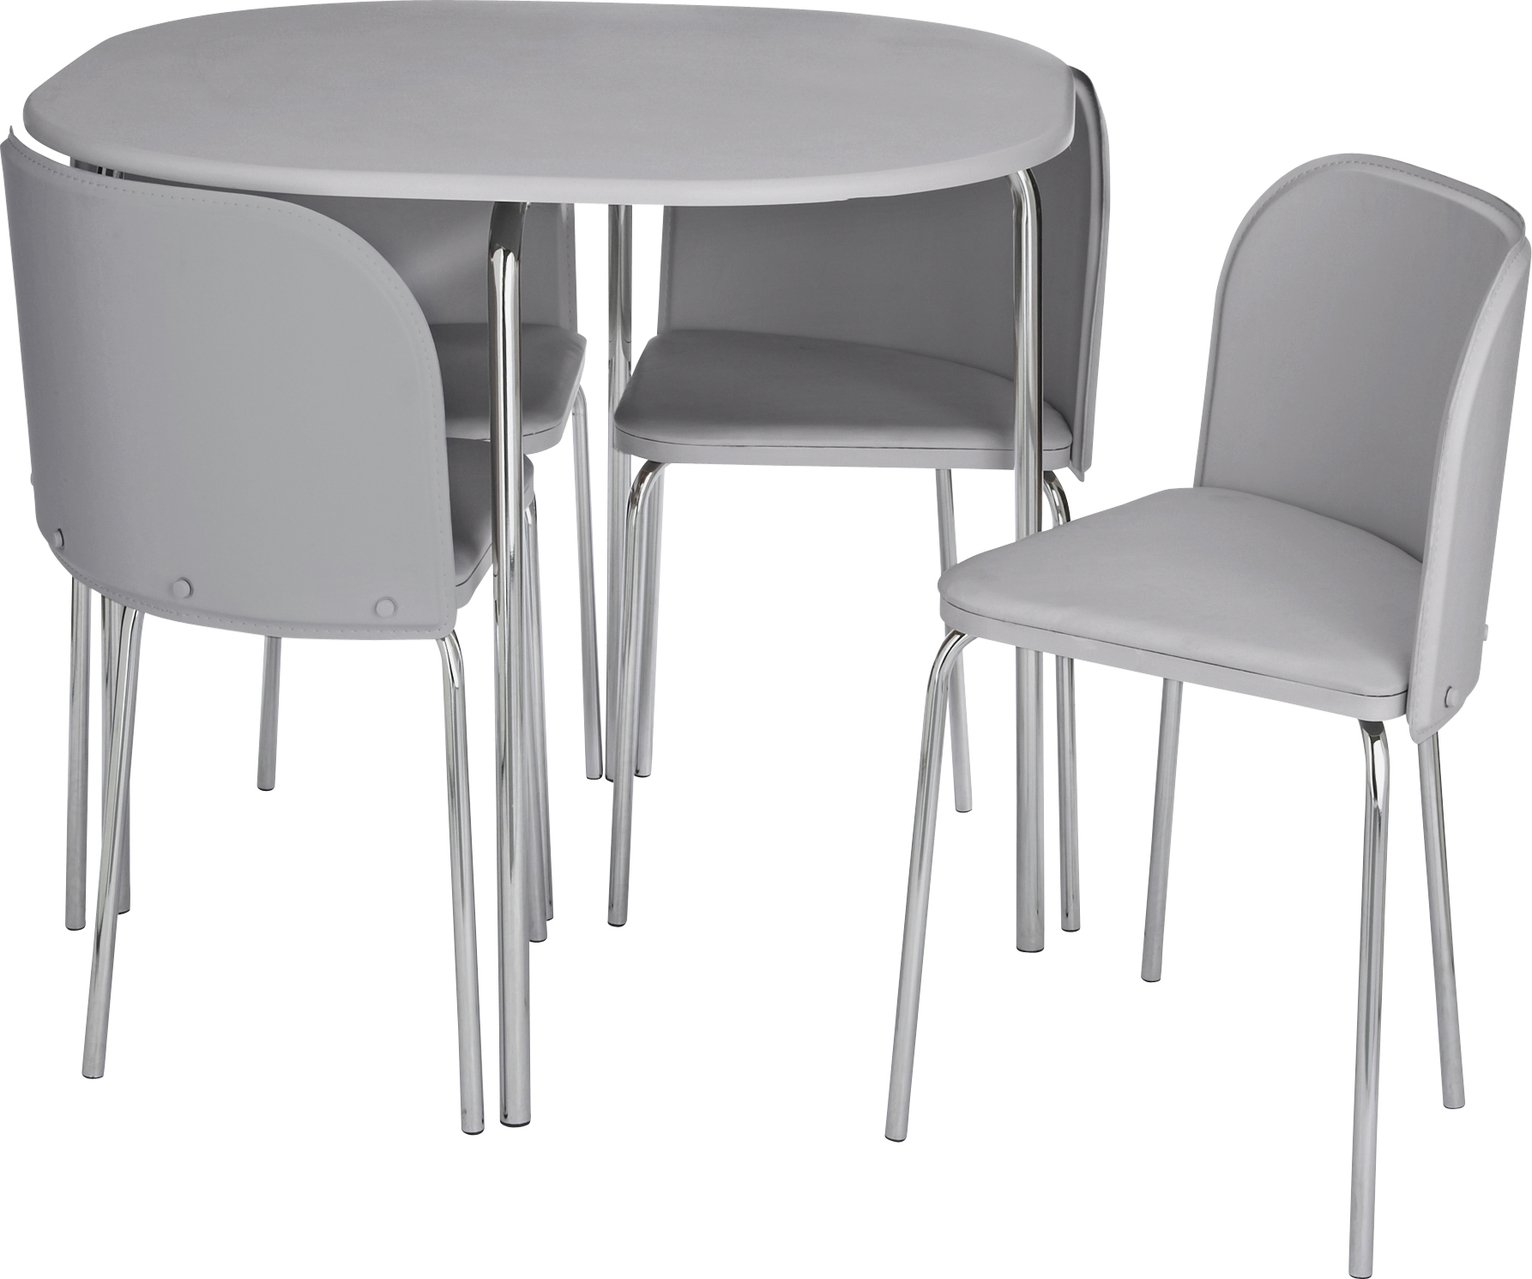 Hygena Wooden Space Saver Table And 4 Chairs Cream